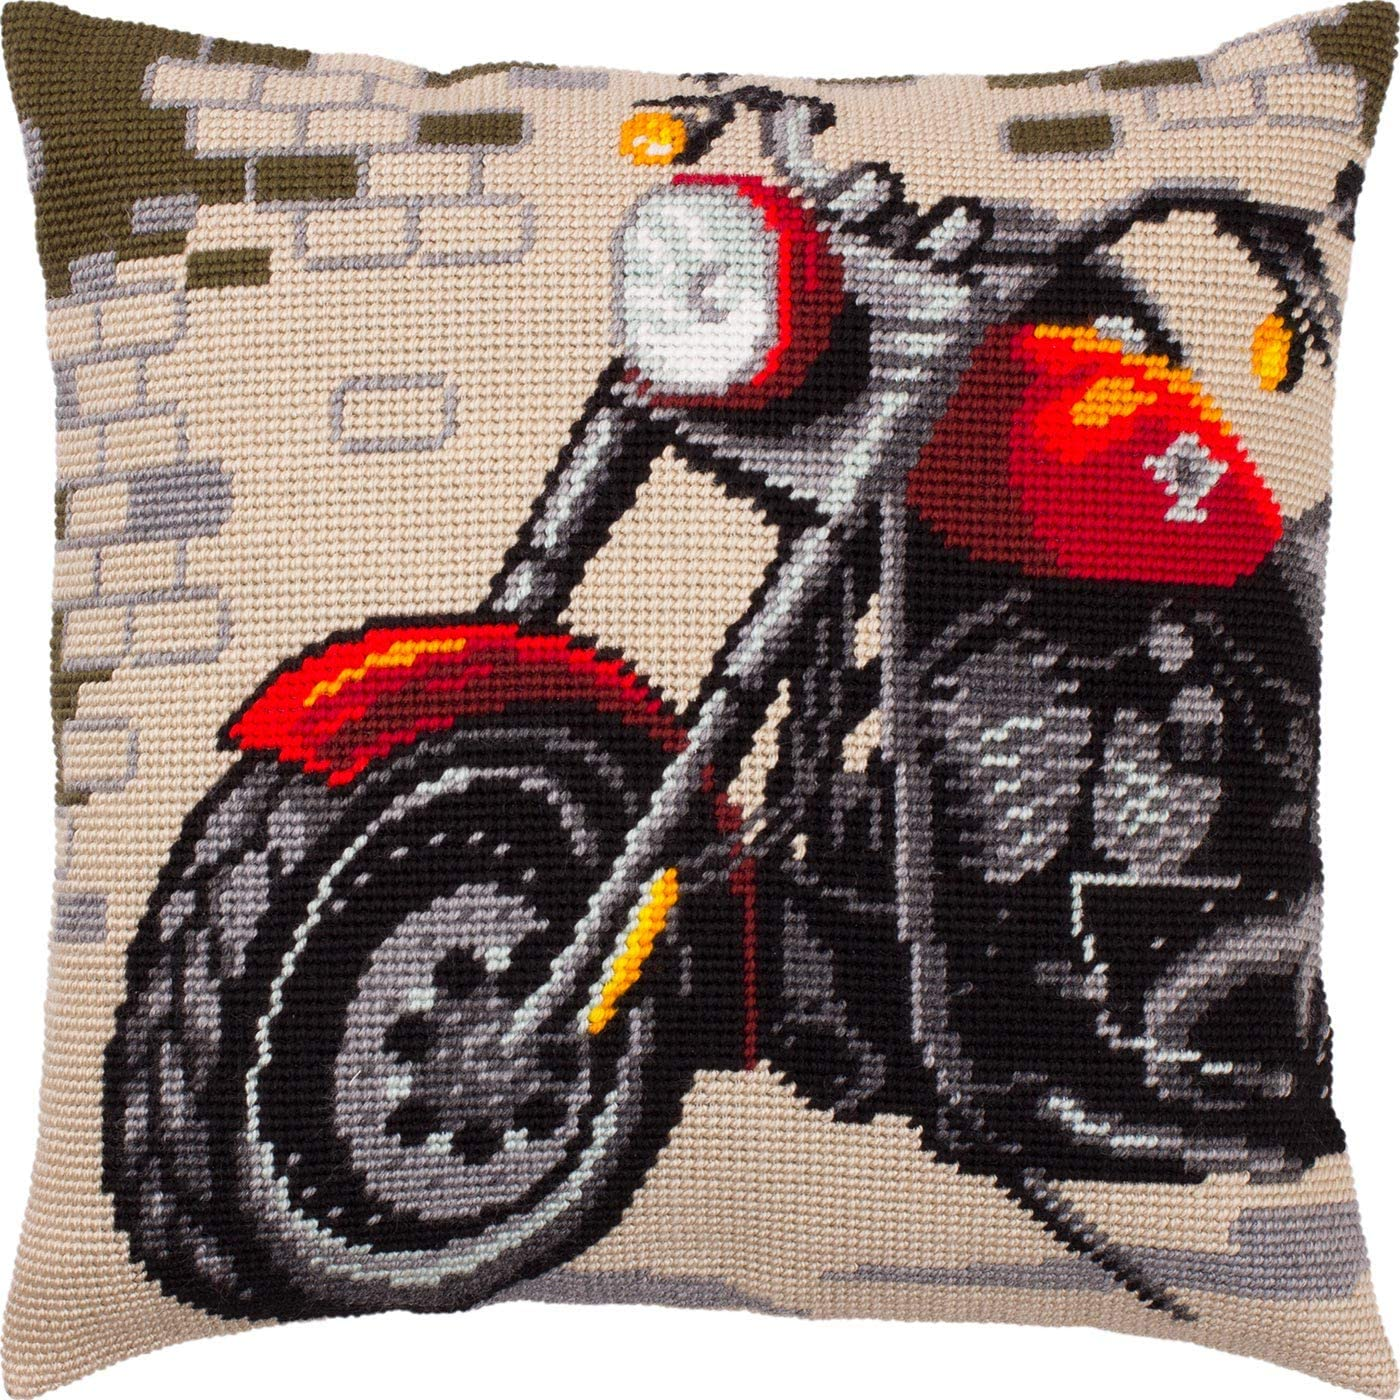 Motorcycle European Quality Needlepoint Kit Printed Tapestry Canvas Throw Pillow 16/×16 Inches